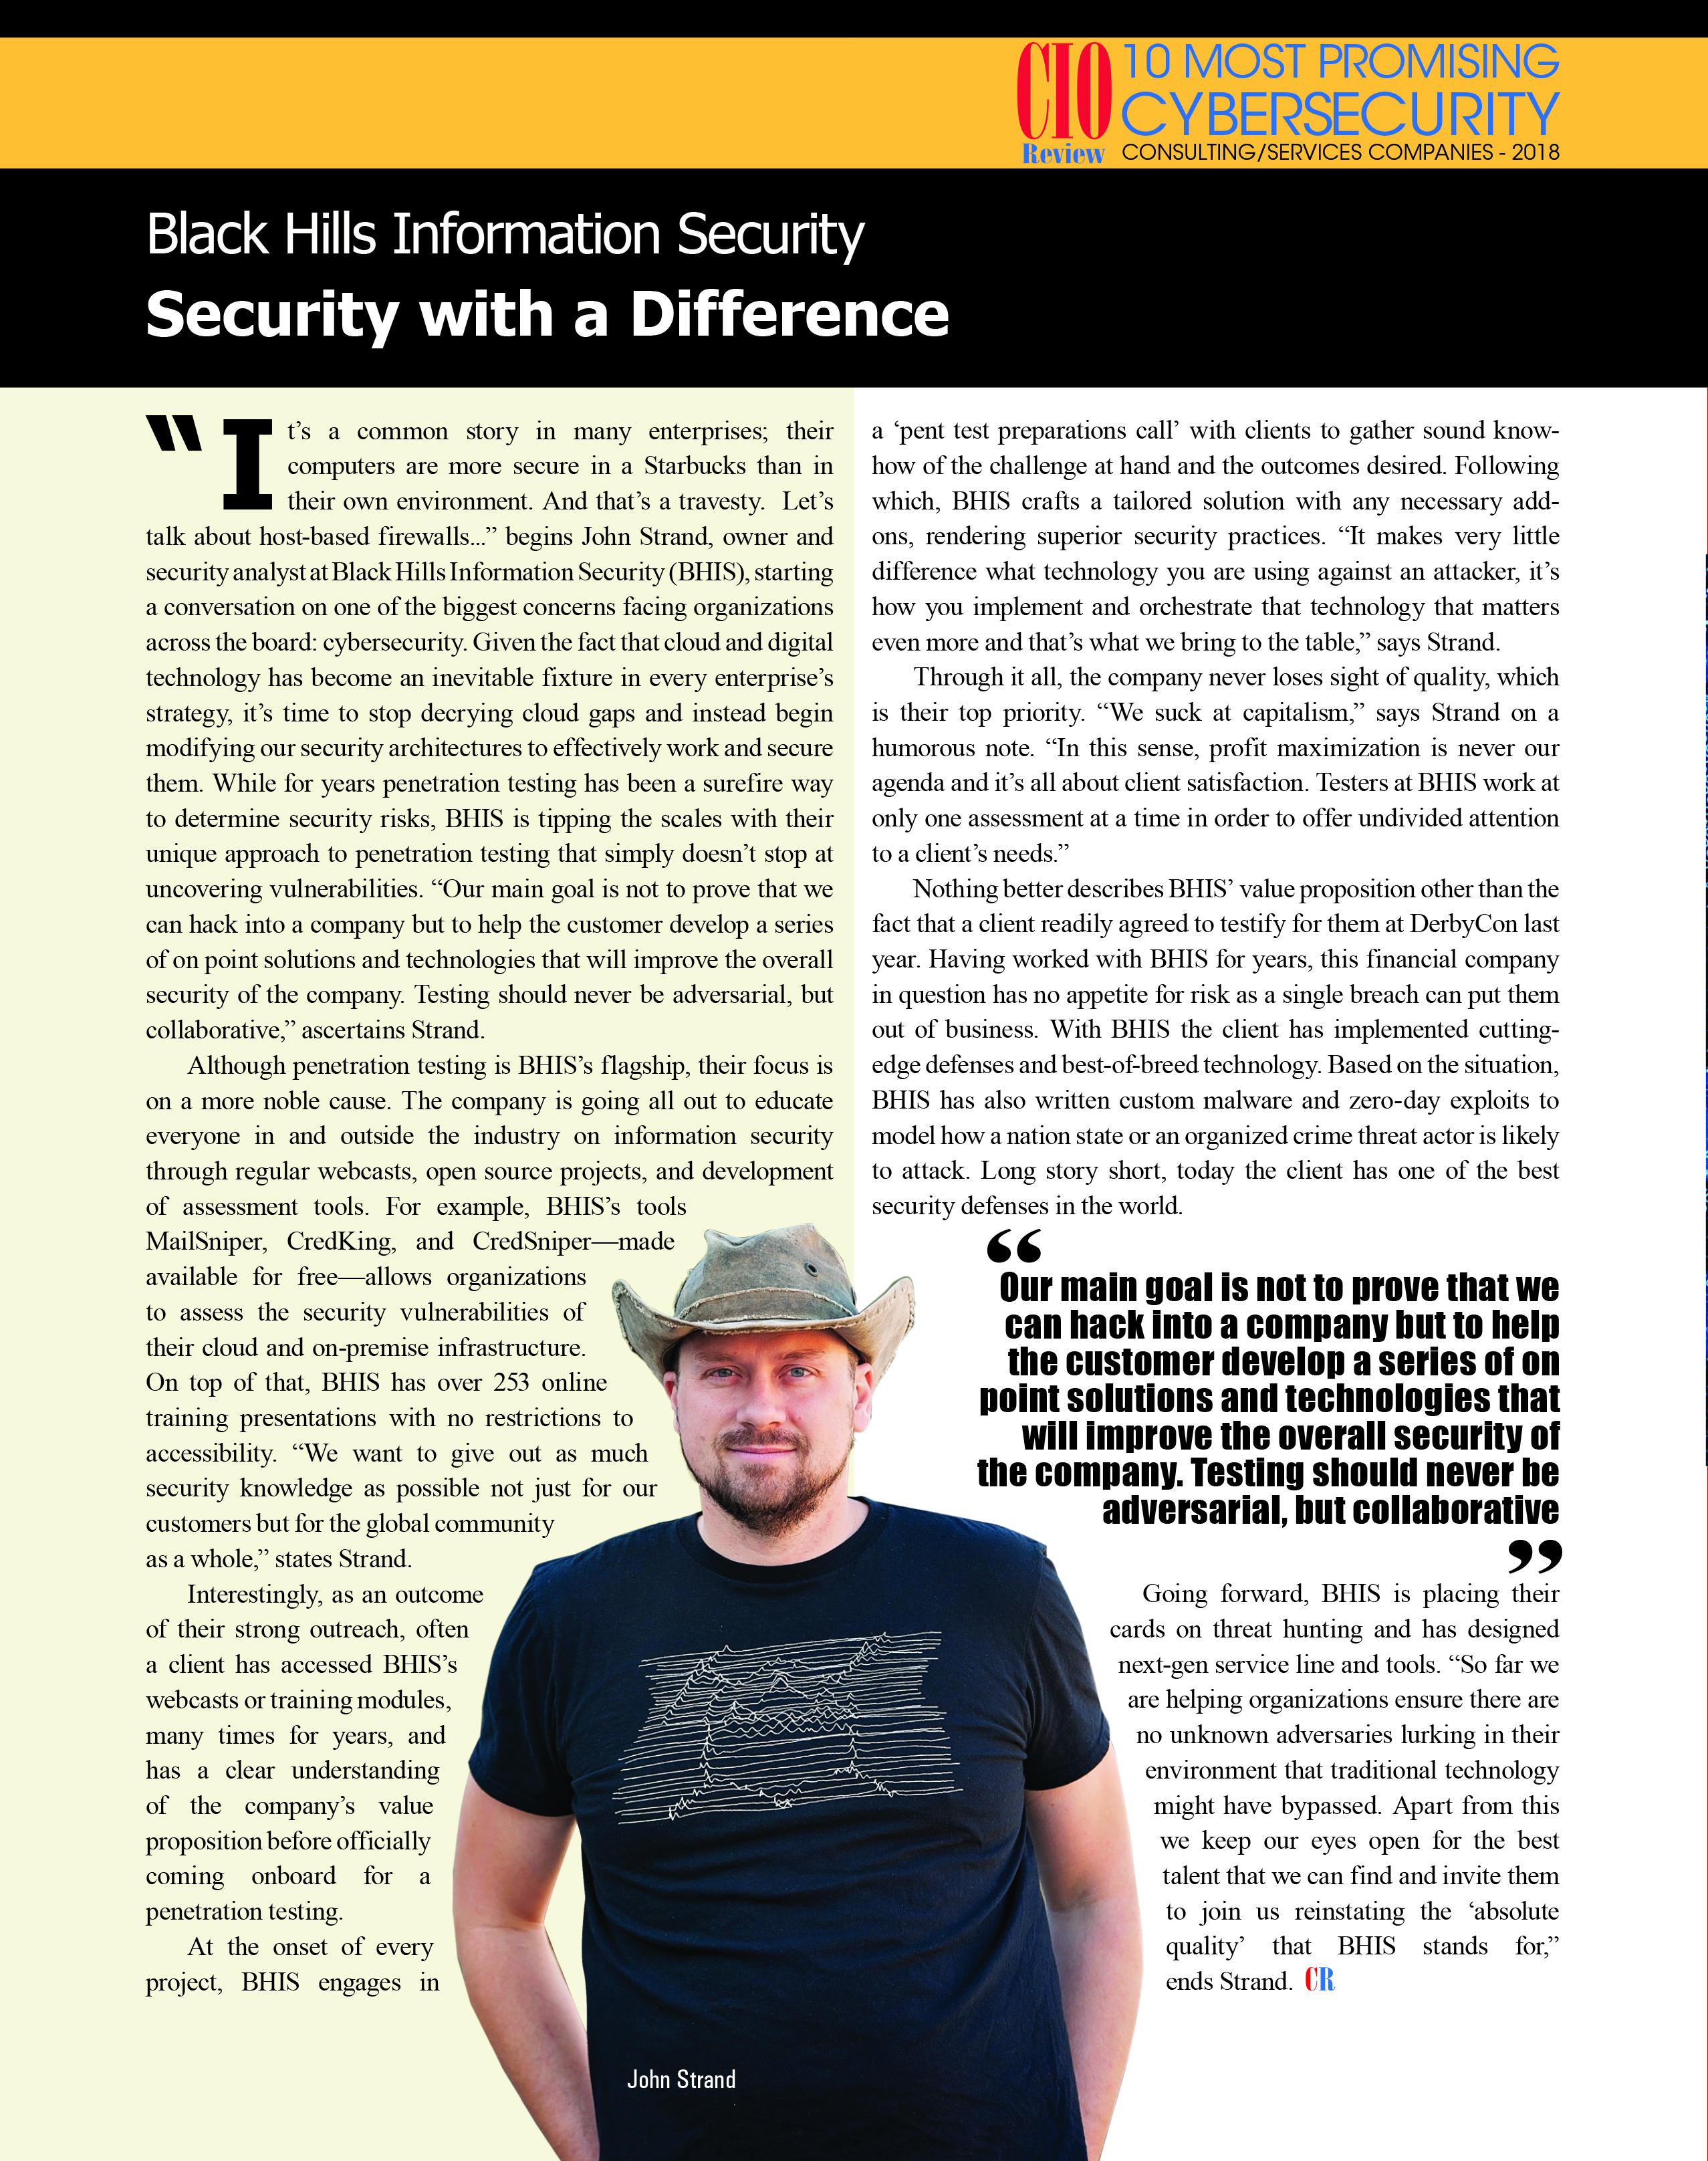 Black Hills Information Security in CIO Review